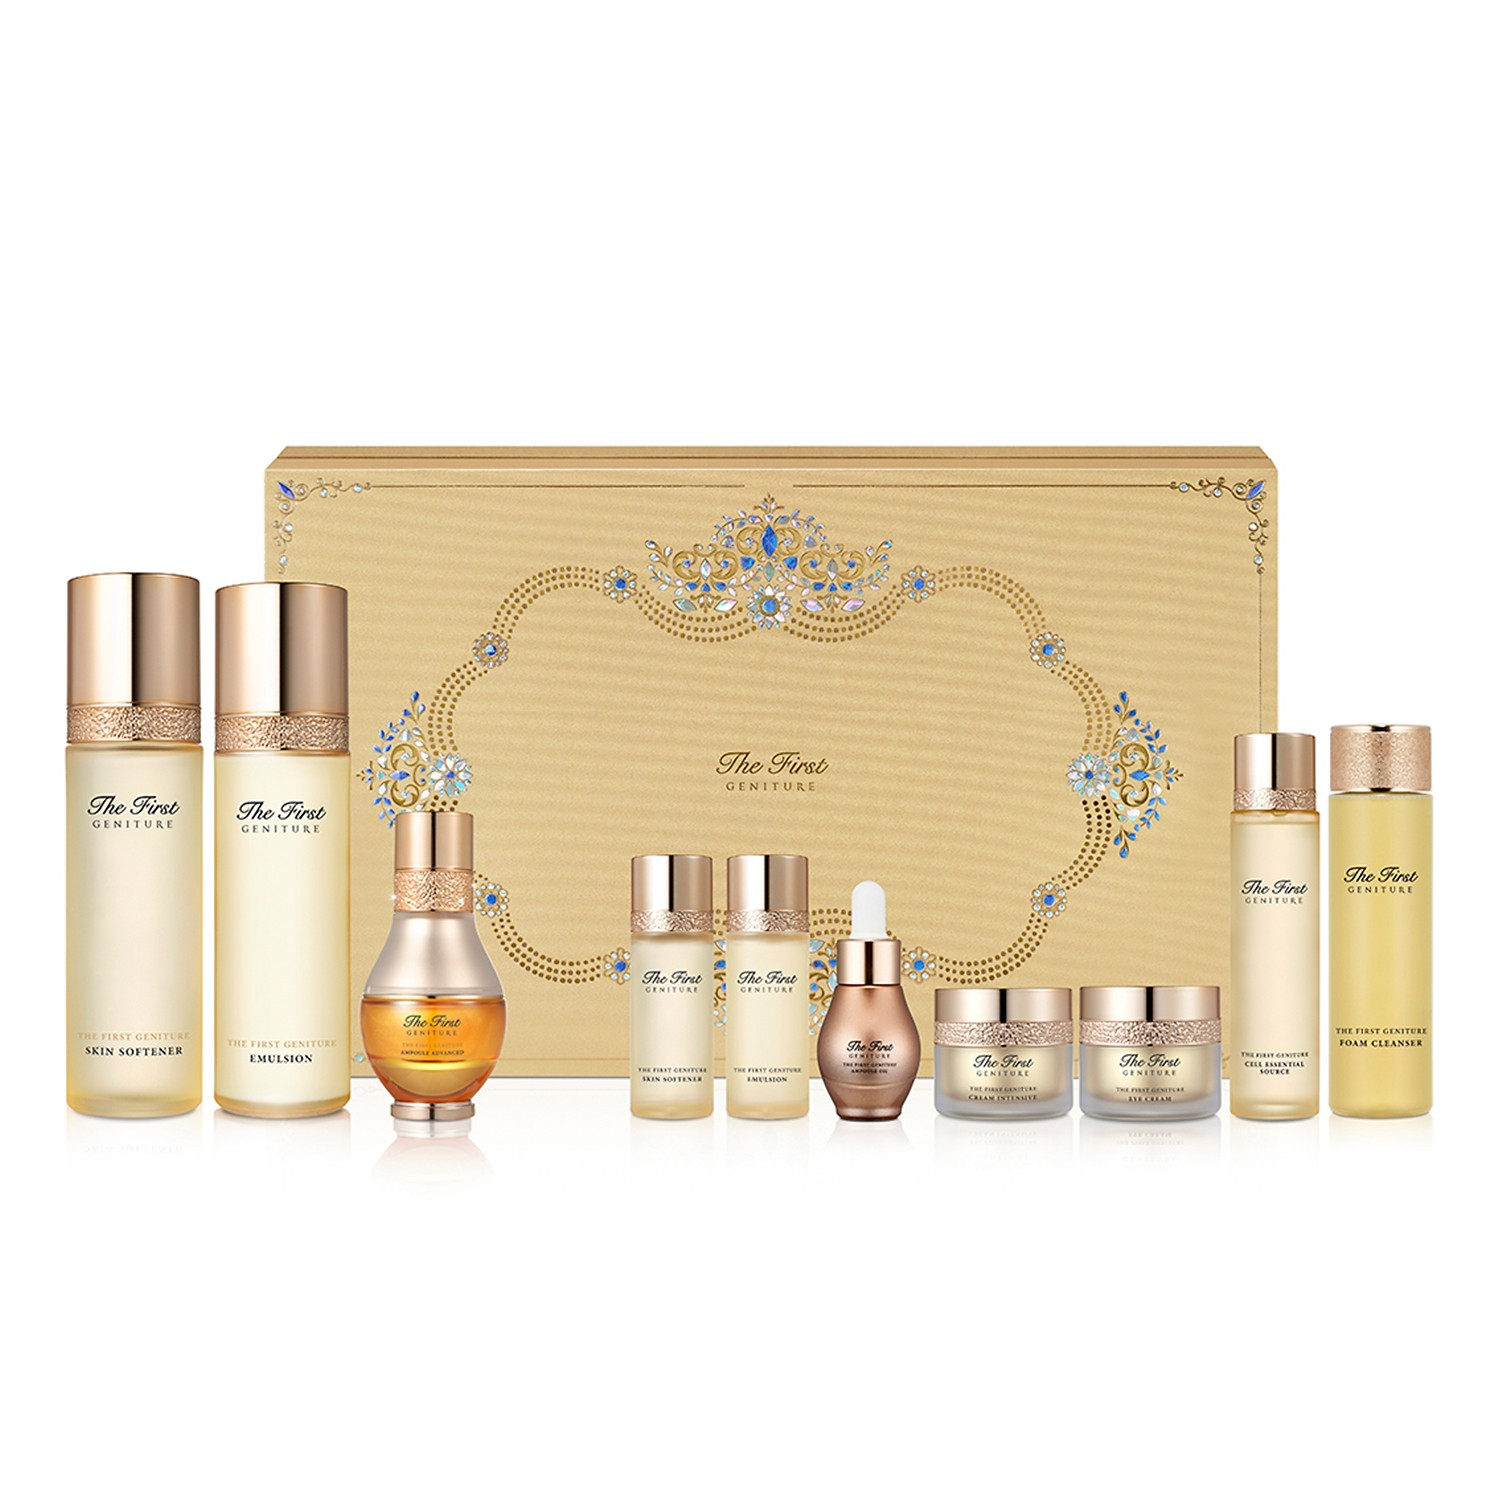 THE FIRST GENITURE SIGNATURE SPECIAL SET